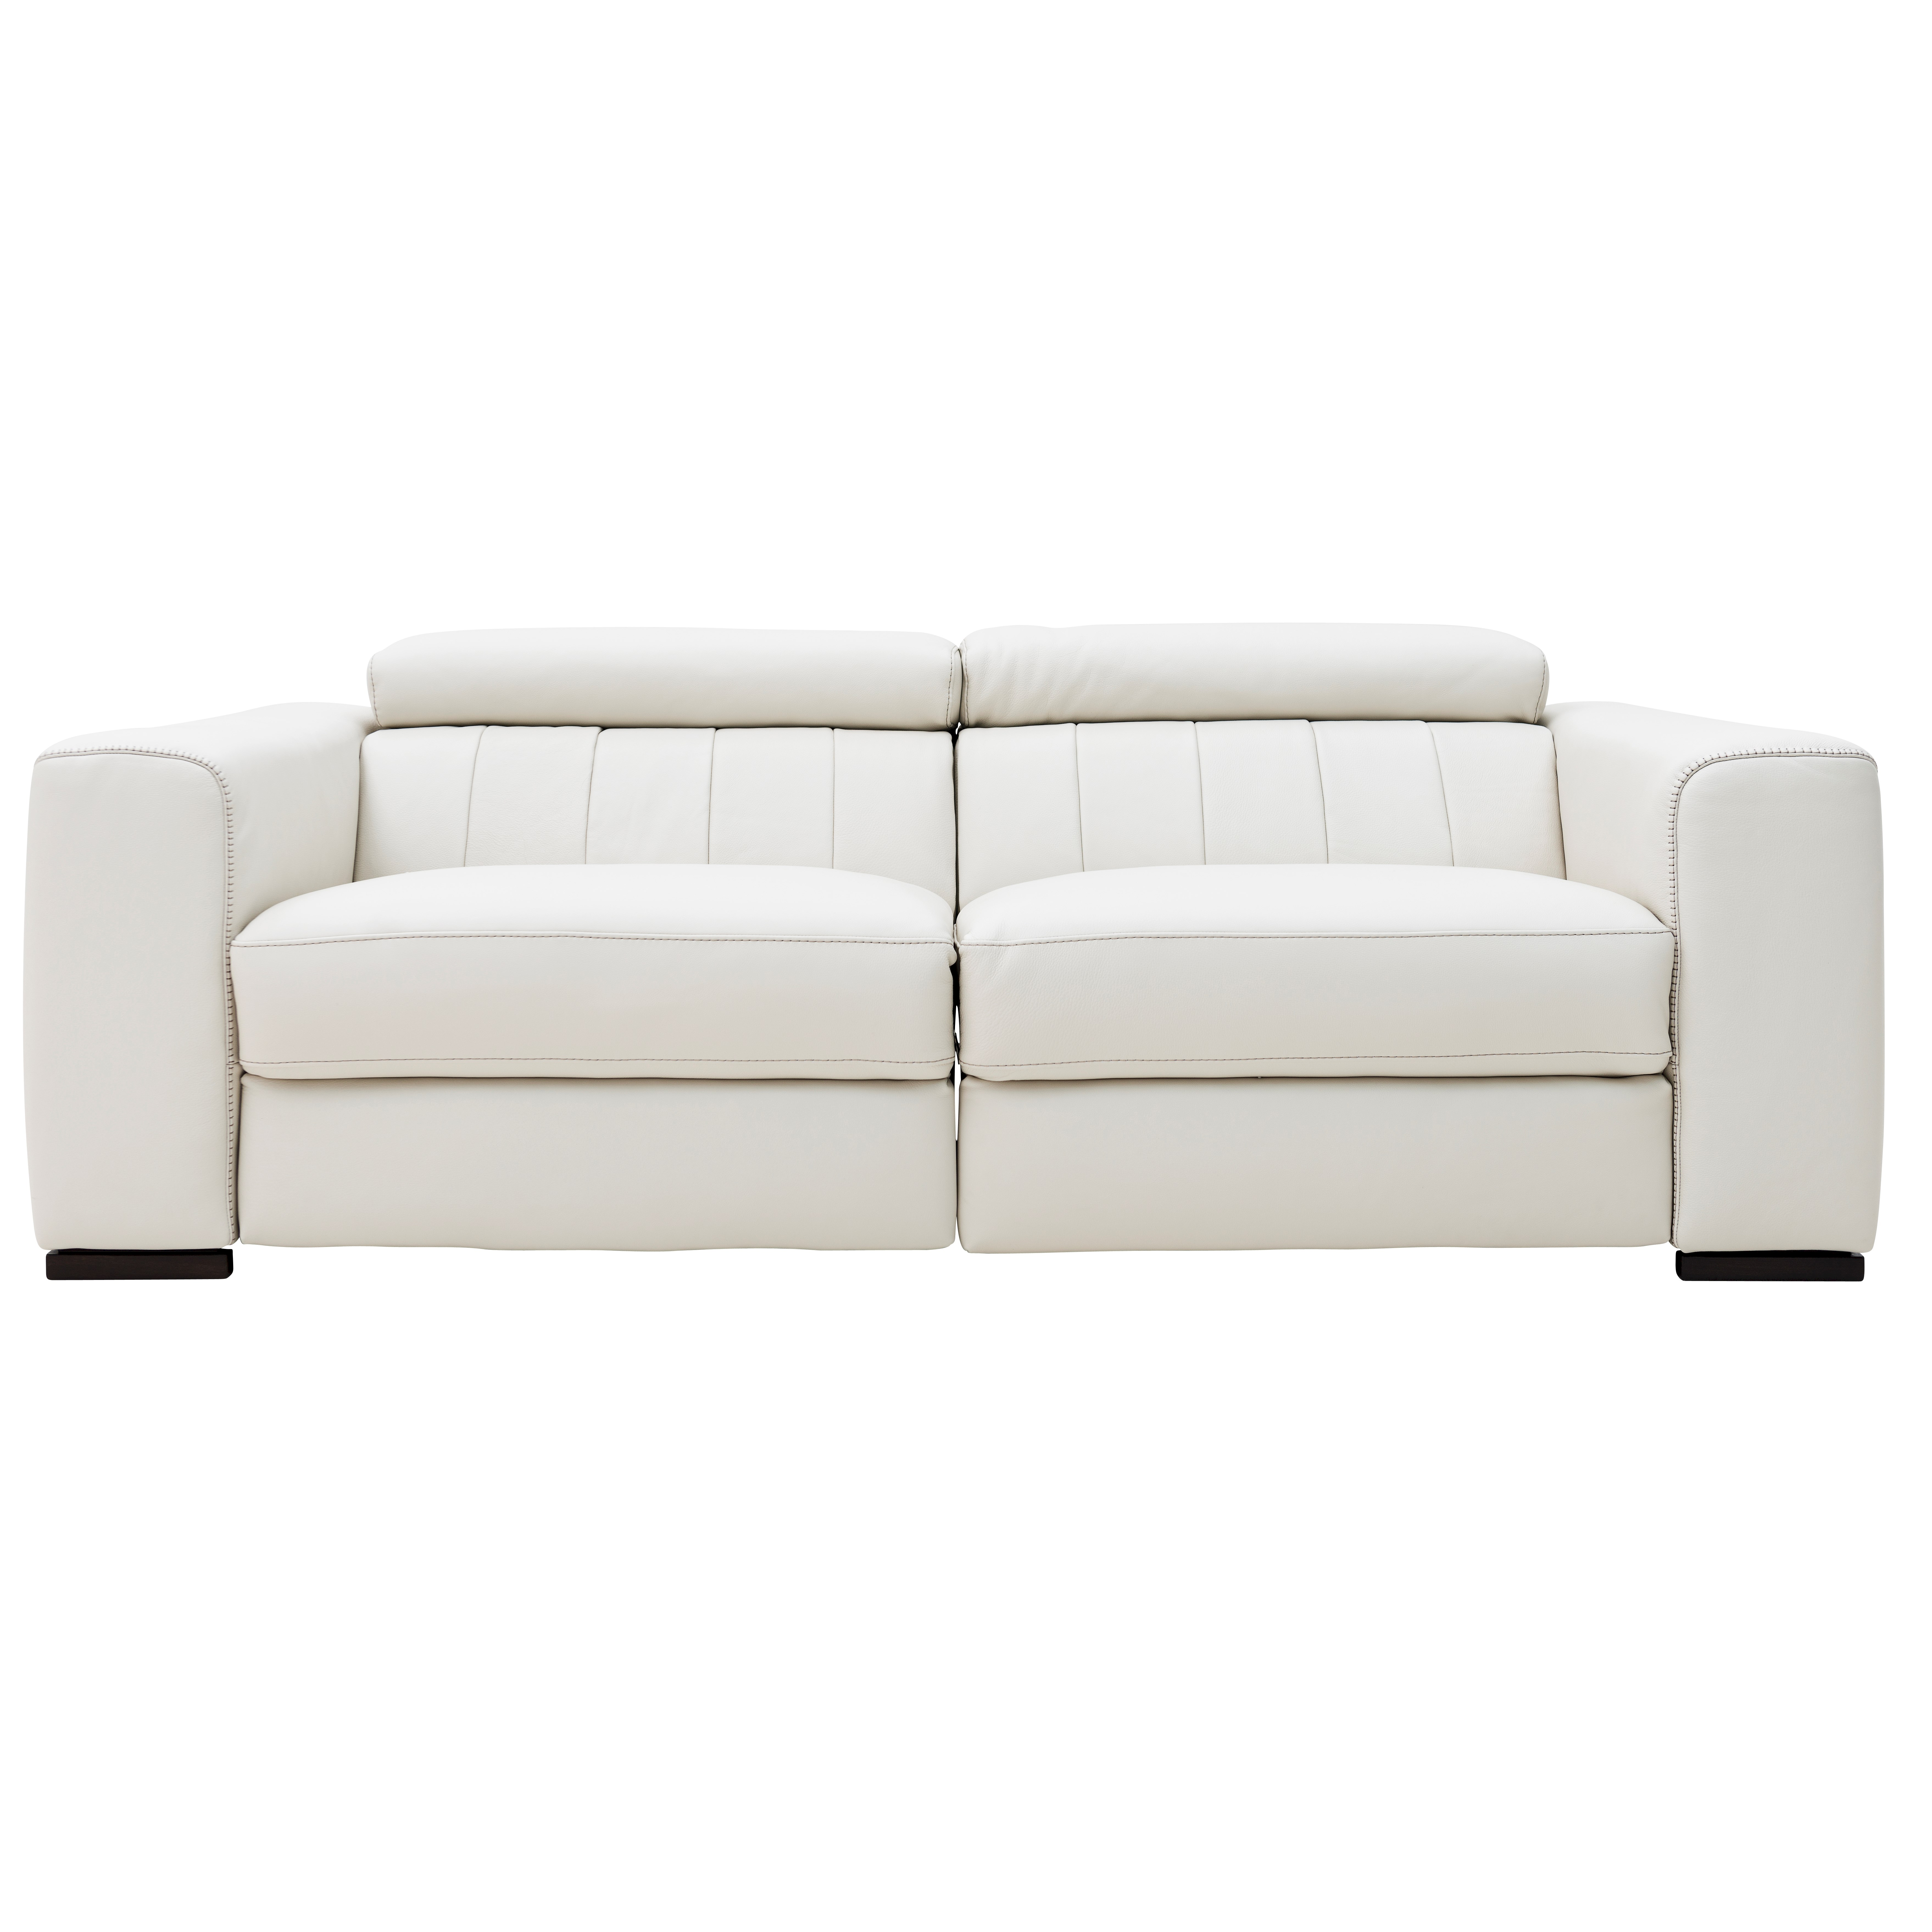 Natuzzi Editions Pavia 2 Seater Power Recliner Sofa | Sterling Furniture  sc 1 st  Sterling Furniture & Natuzzi Editions Pavia 2 Seater Power Recliner Sofa | Sterling ... islam-shia.org